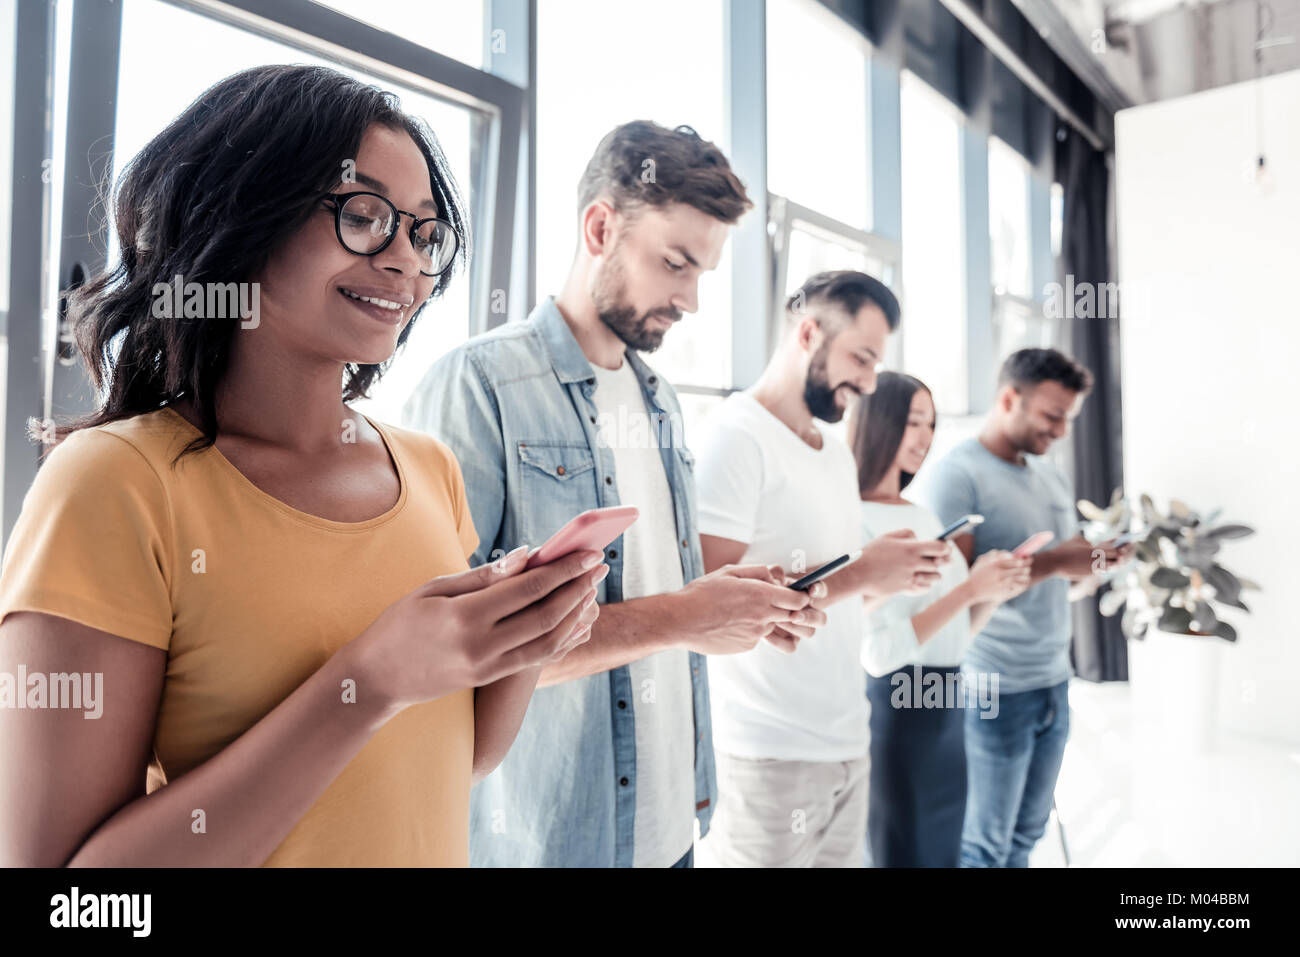 Young lady smiling while looking at smartphone - Stock Image